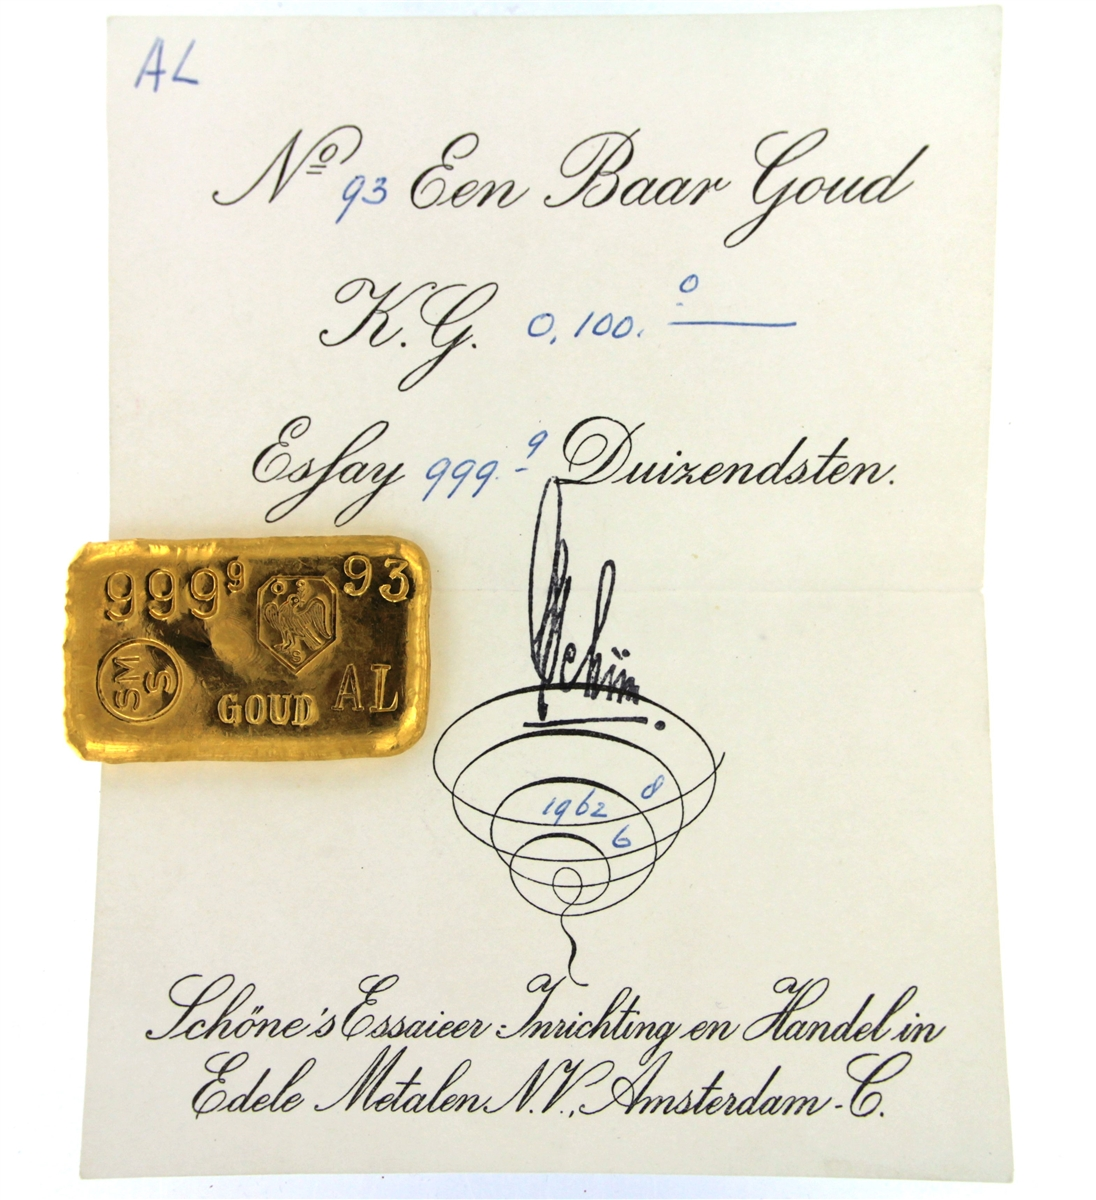 Schöne Edelmetaal 100 Grams Cast 24 Carat Gold Bullion Bar 9999 Pure Gold With Assay Certificate 1962